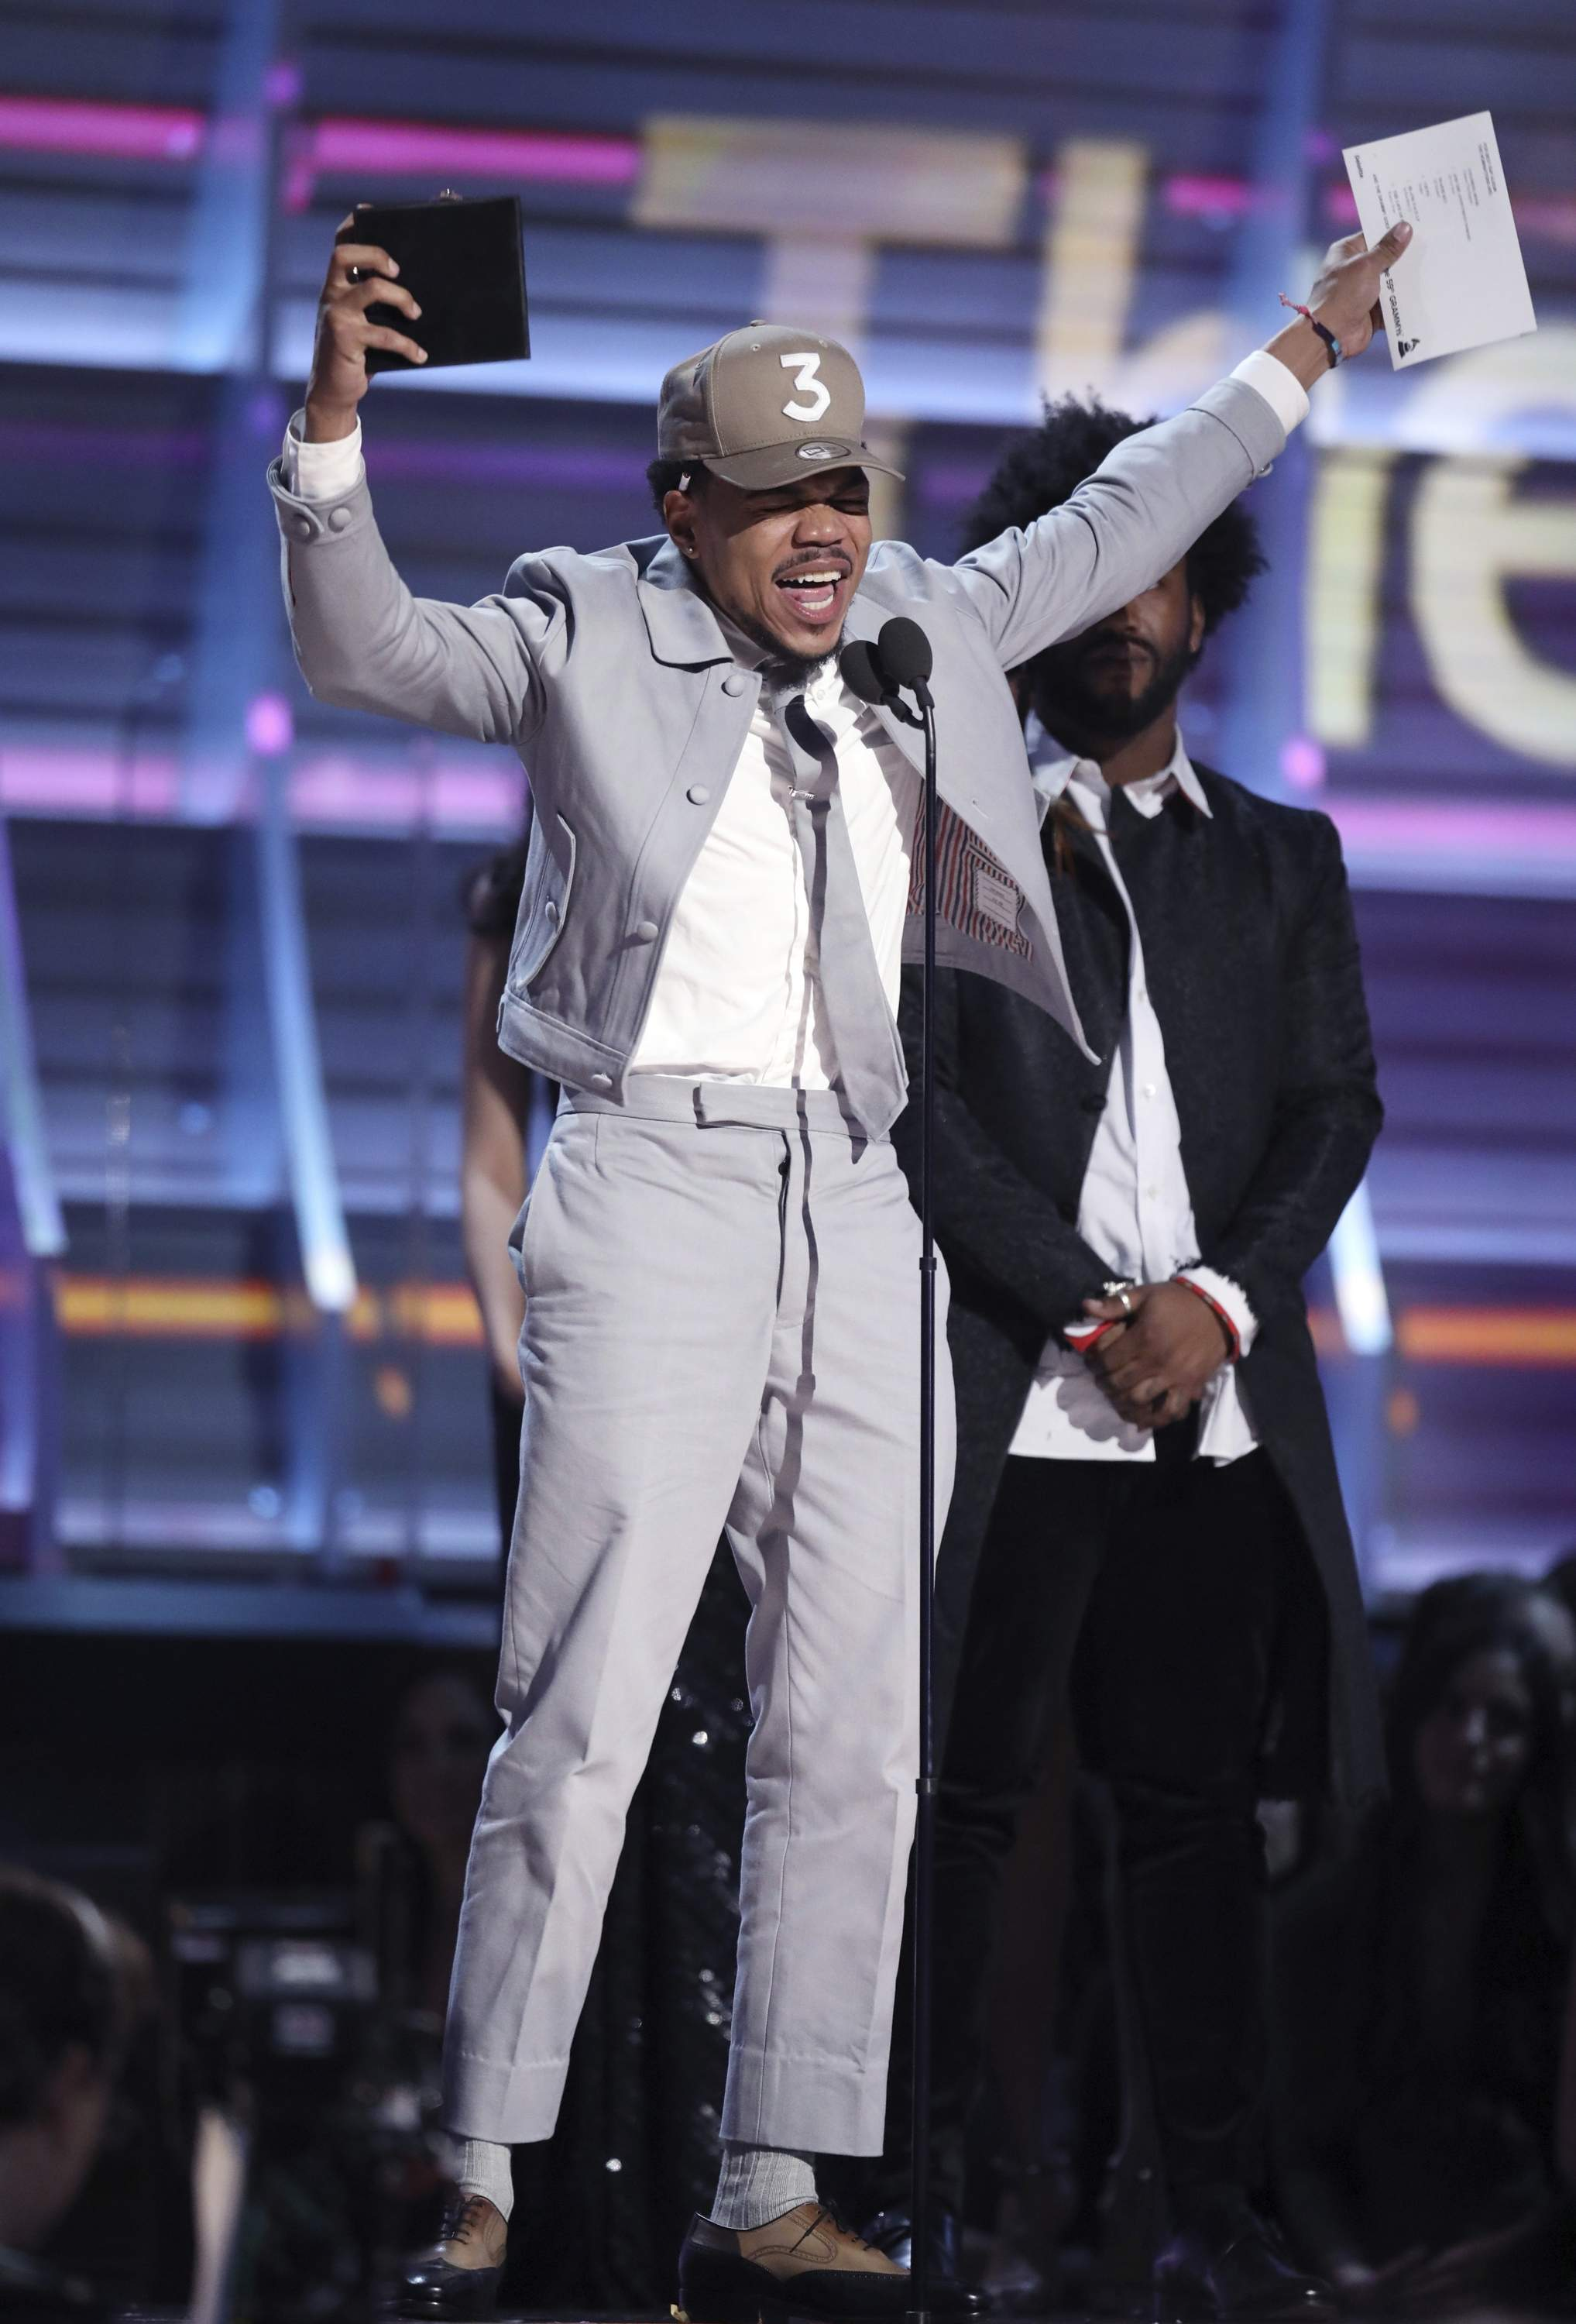 Chance The Rapper accepts the award for best rap album for 'Coloring Book' at the 59th annual Grammy Awards on Sunday, Feb. 12, 2017, in Los Angeles. THE ASSOCIATED PRESS